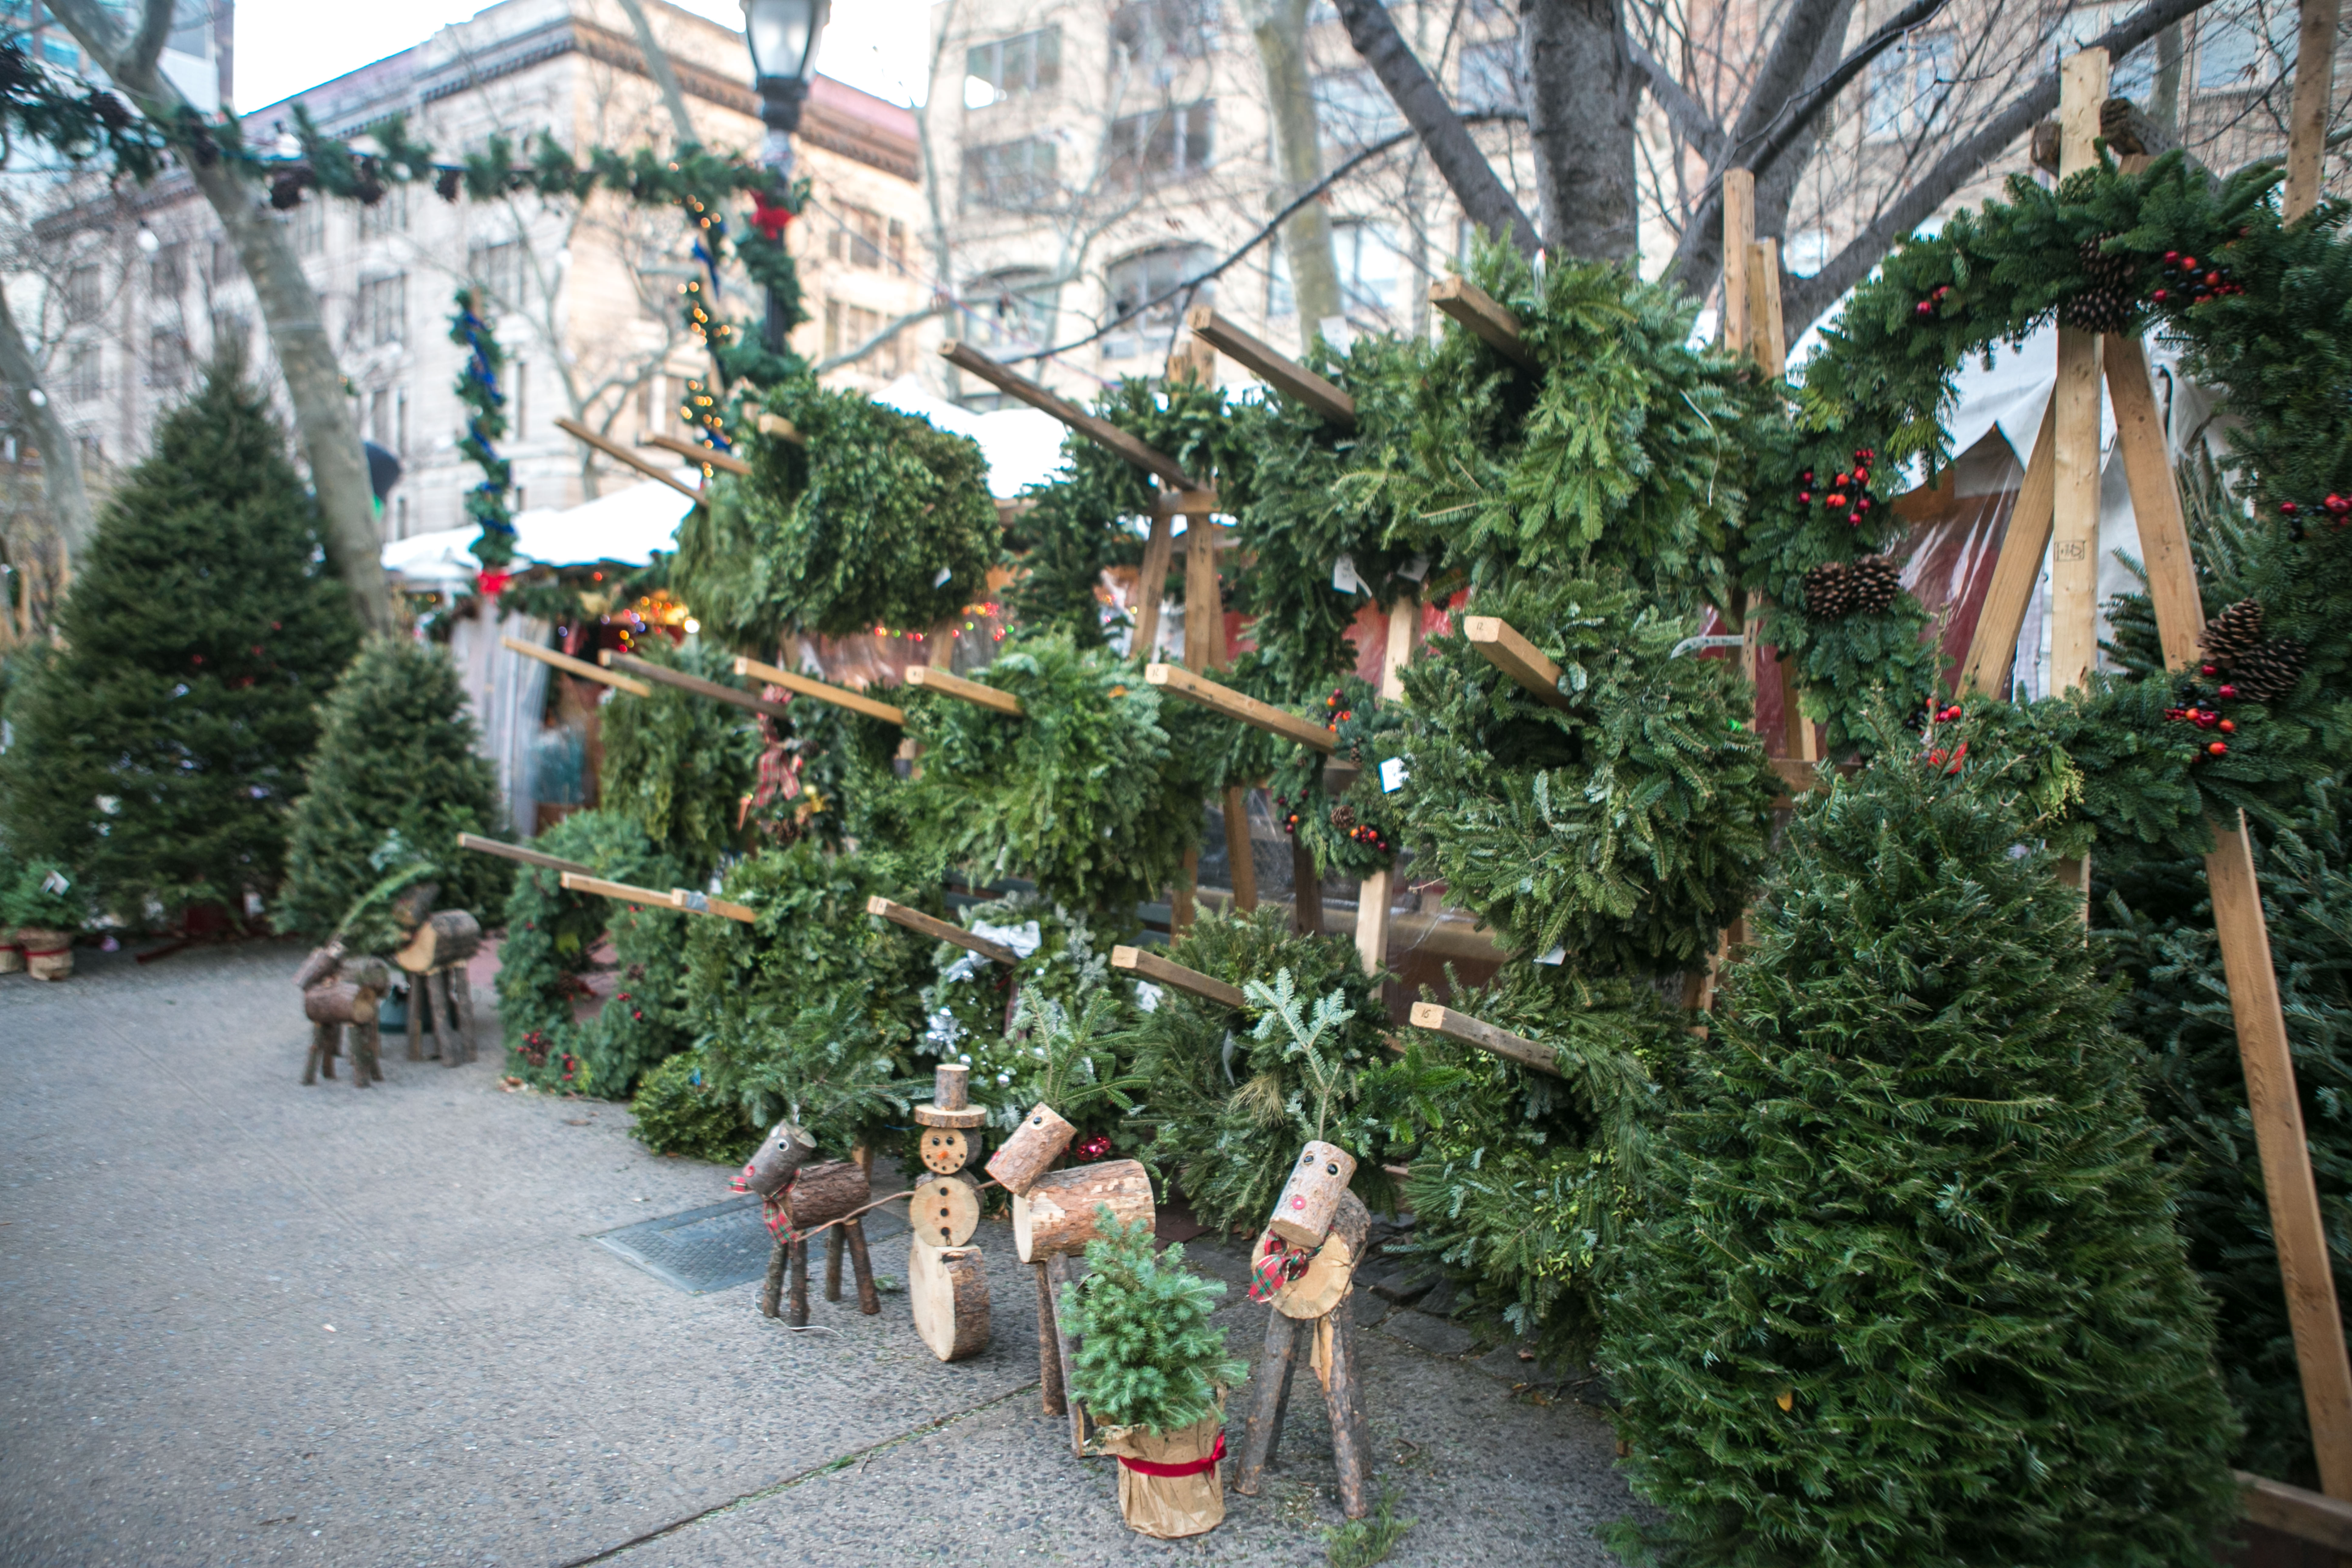 Christmas trees and wreaths for sale at a sidewalk pop-up holiday shop in the